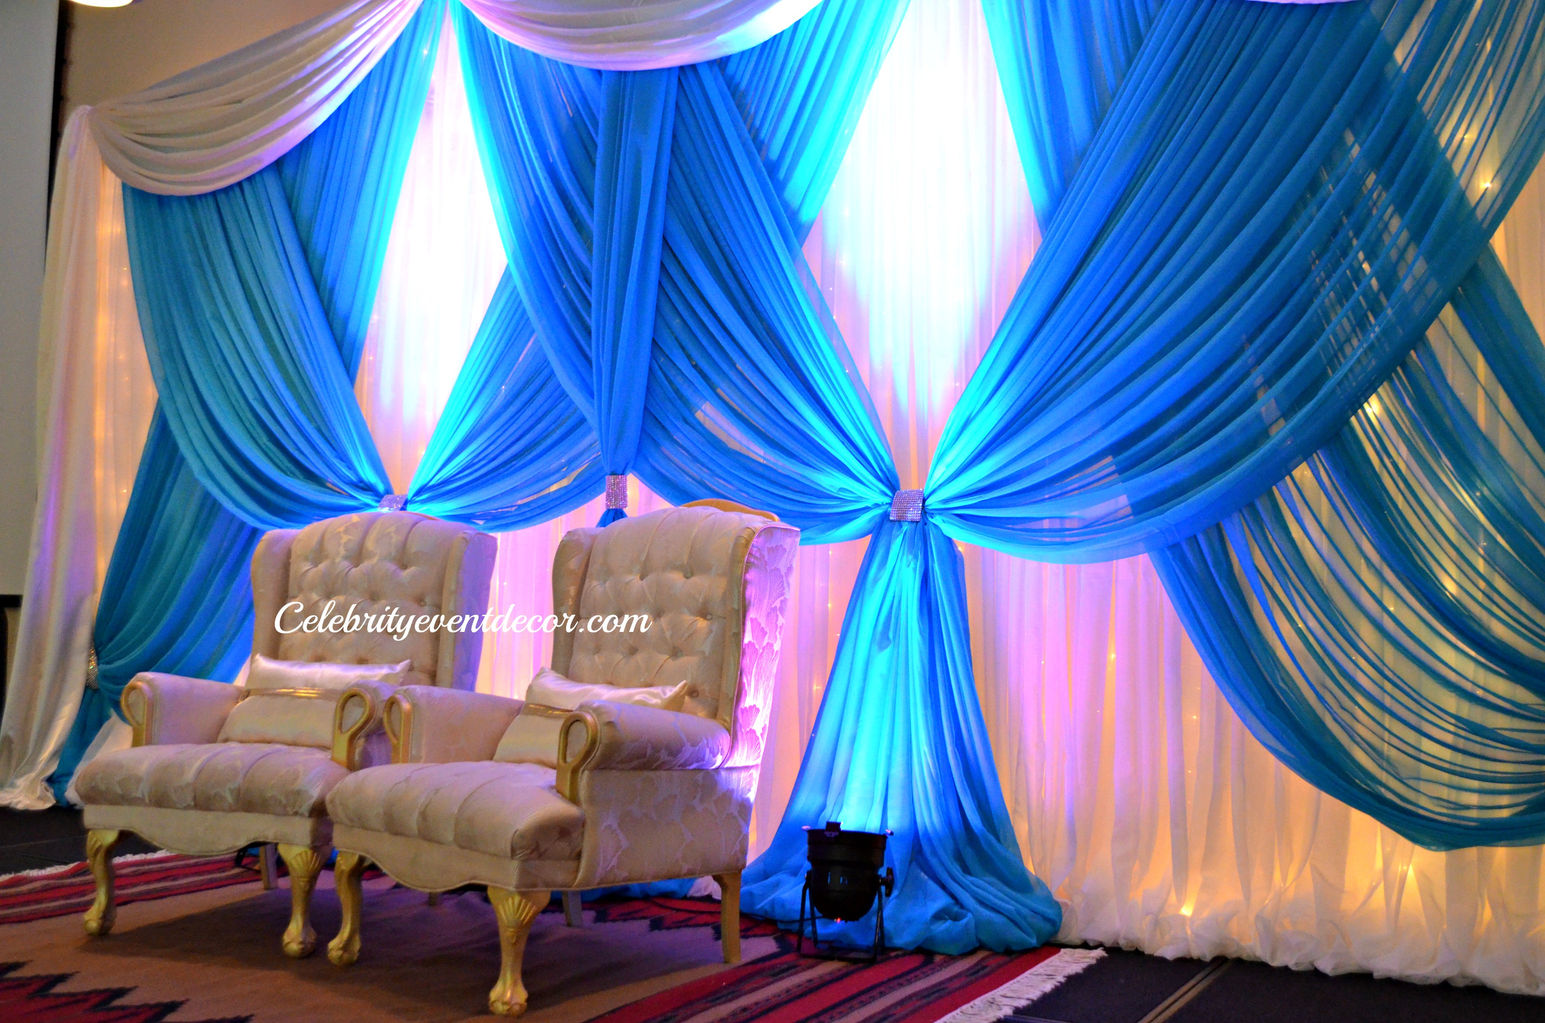 decoration latest pondicherry decor hotel sunway event decorations